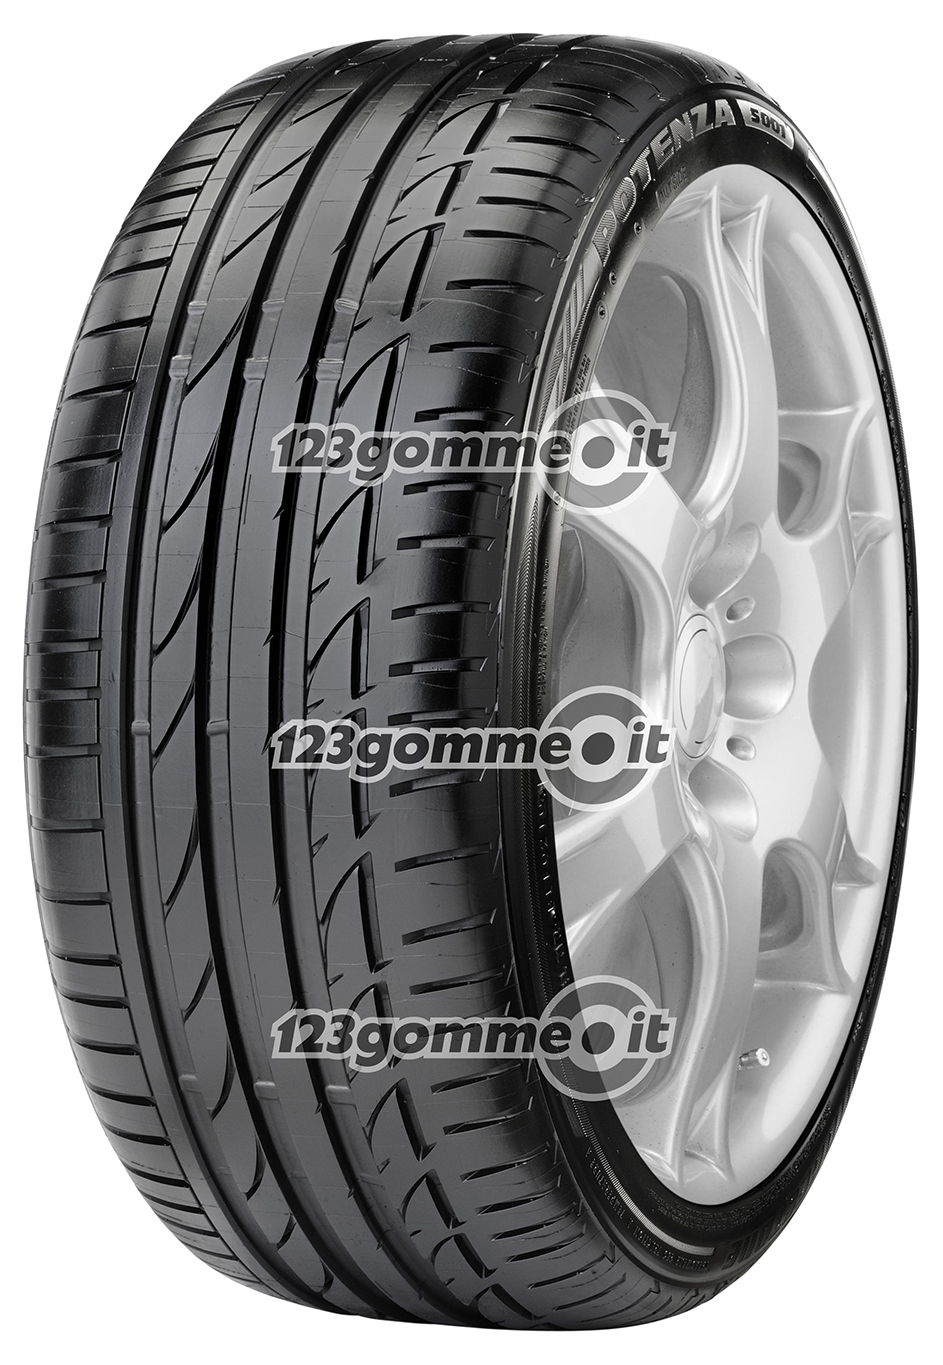 245/40 R17 91W Potenza S 001 RFT *  Potenza S 001 RFT *